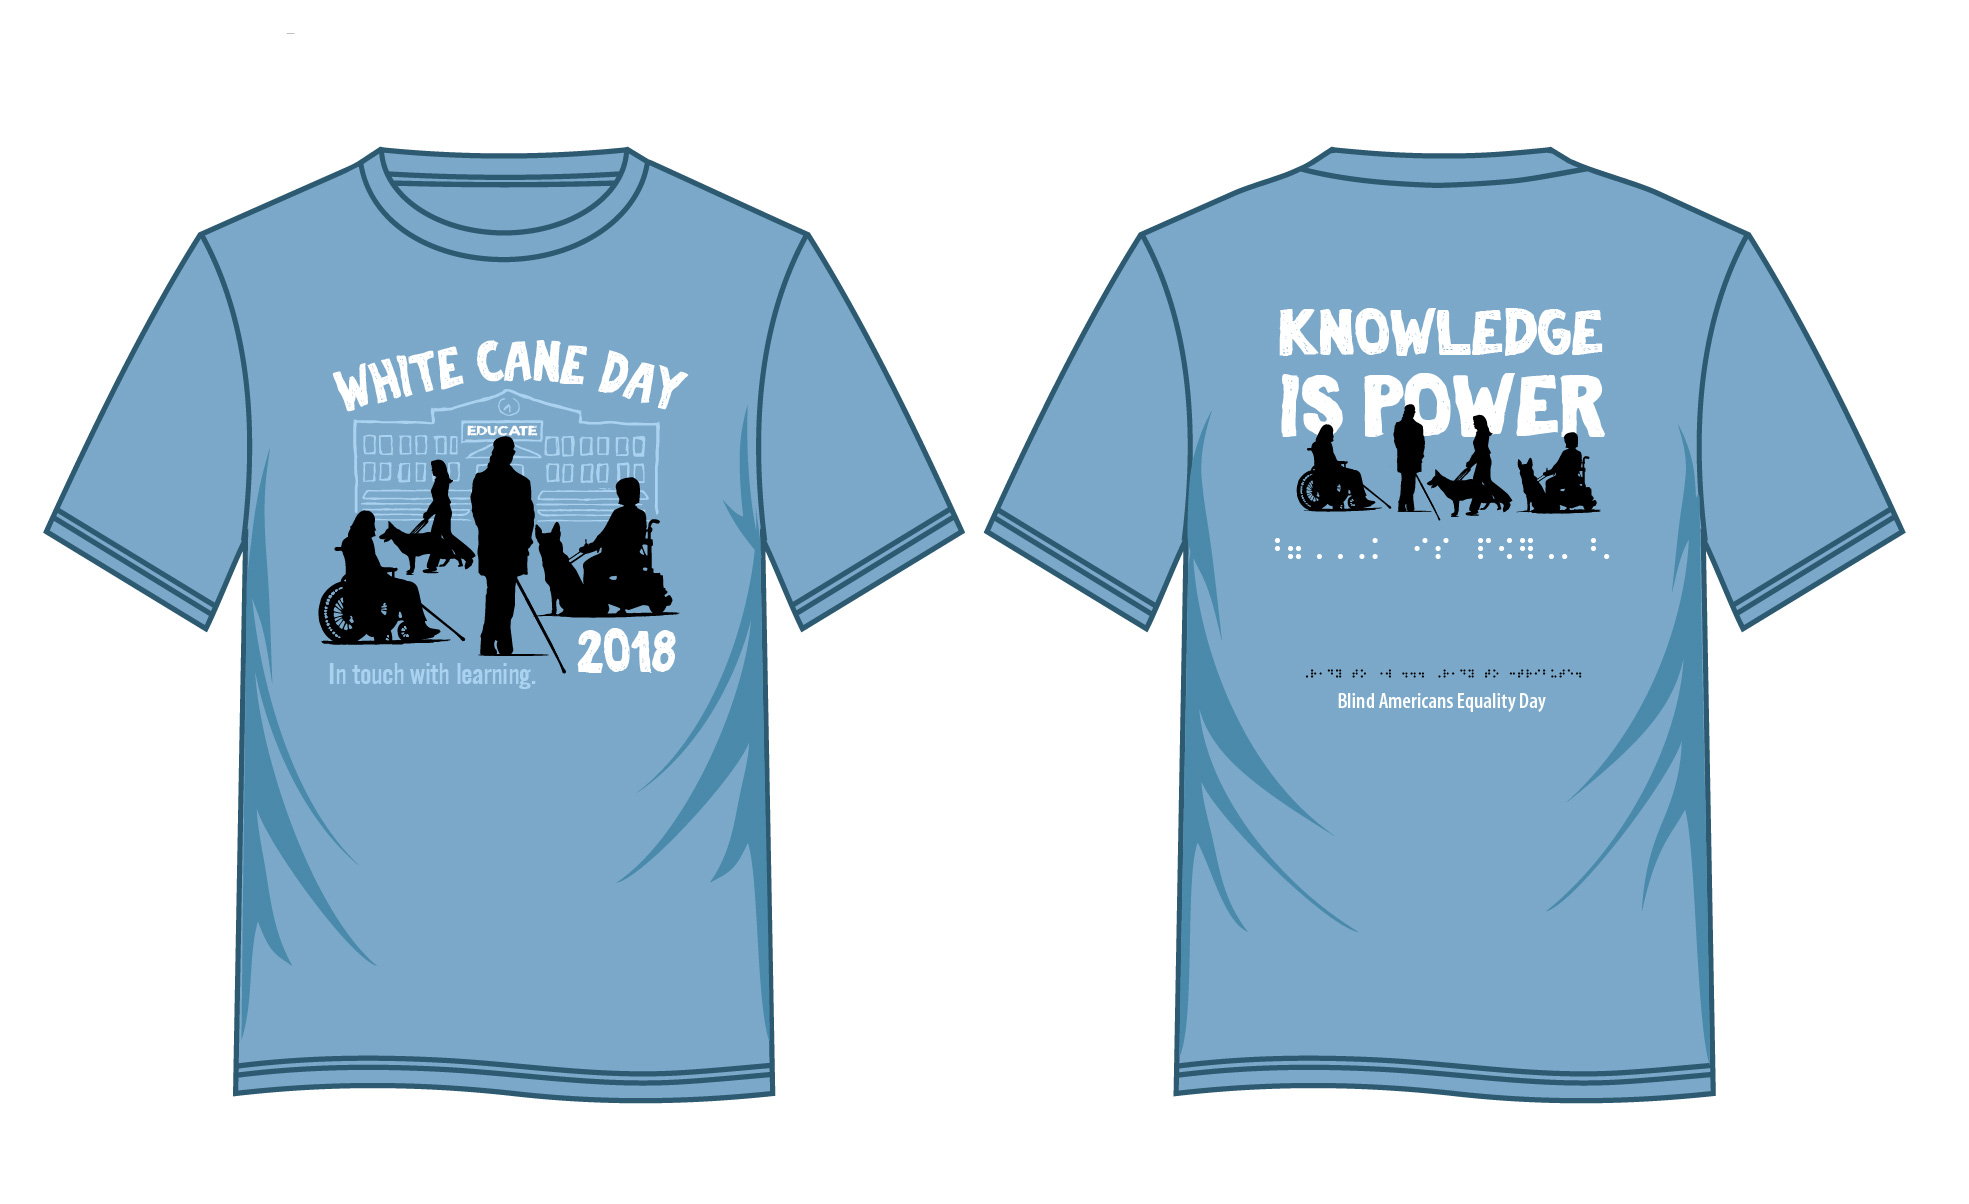 2018 White Cane Day T-shirt